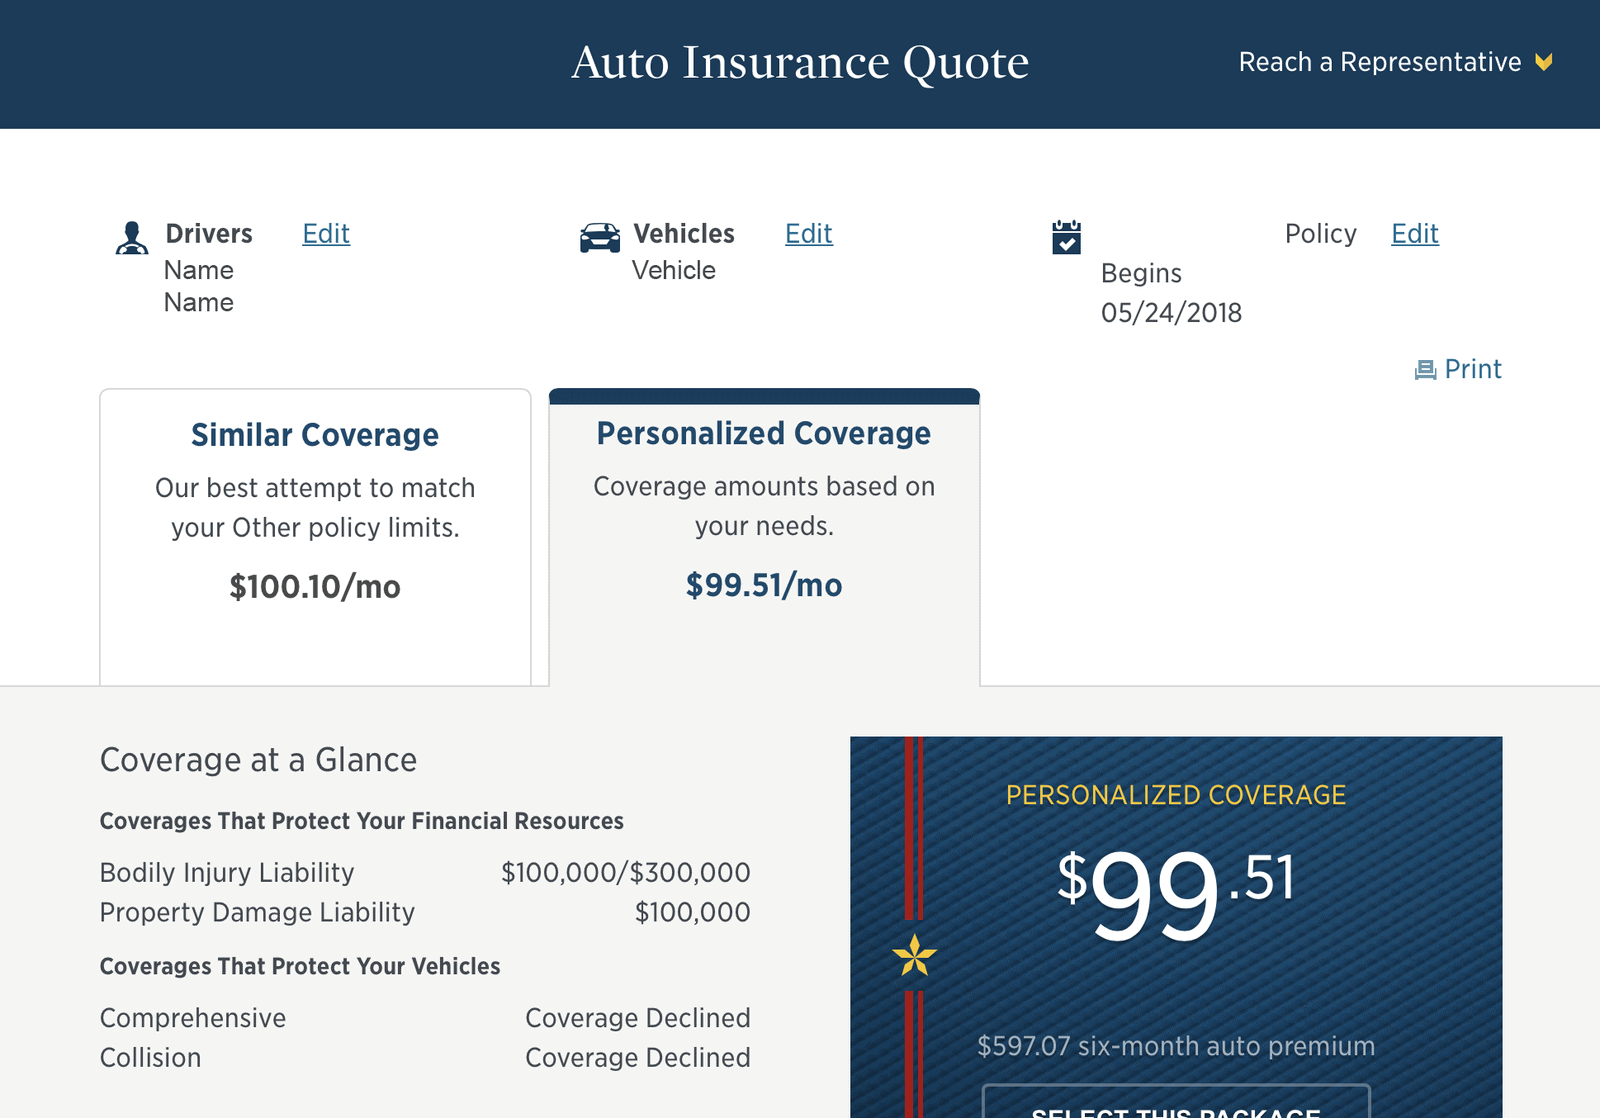 USAA Auto Insurance Review Sample Quote and Coverage